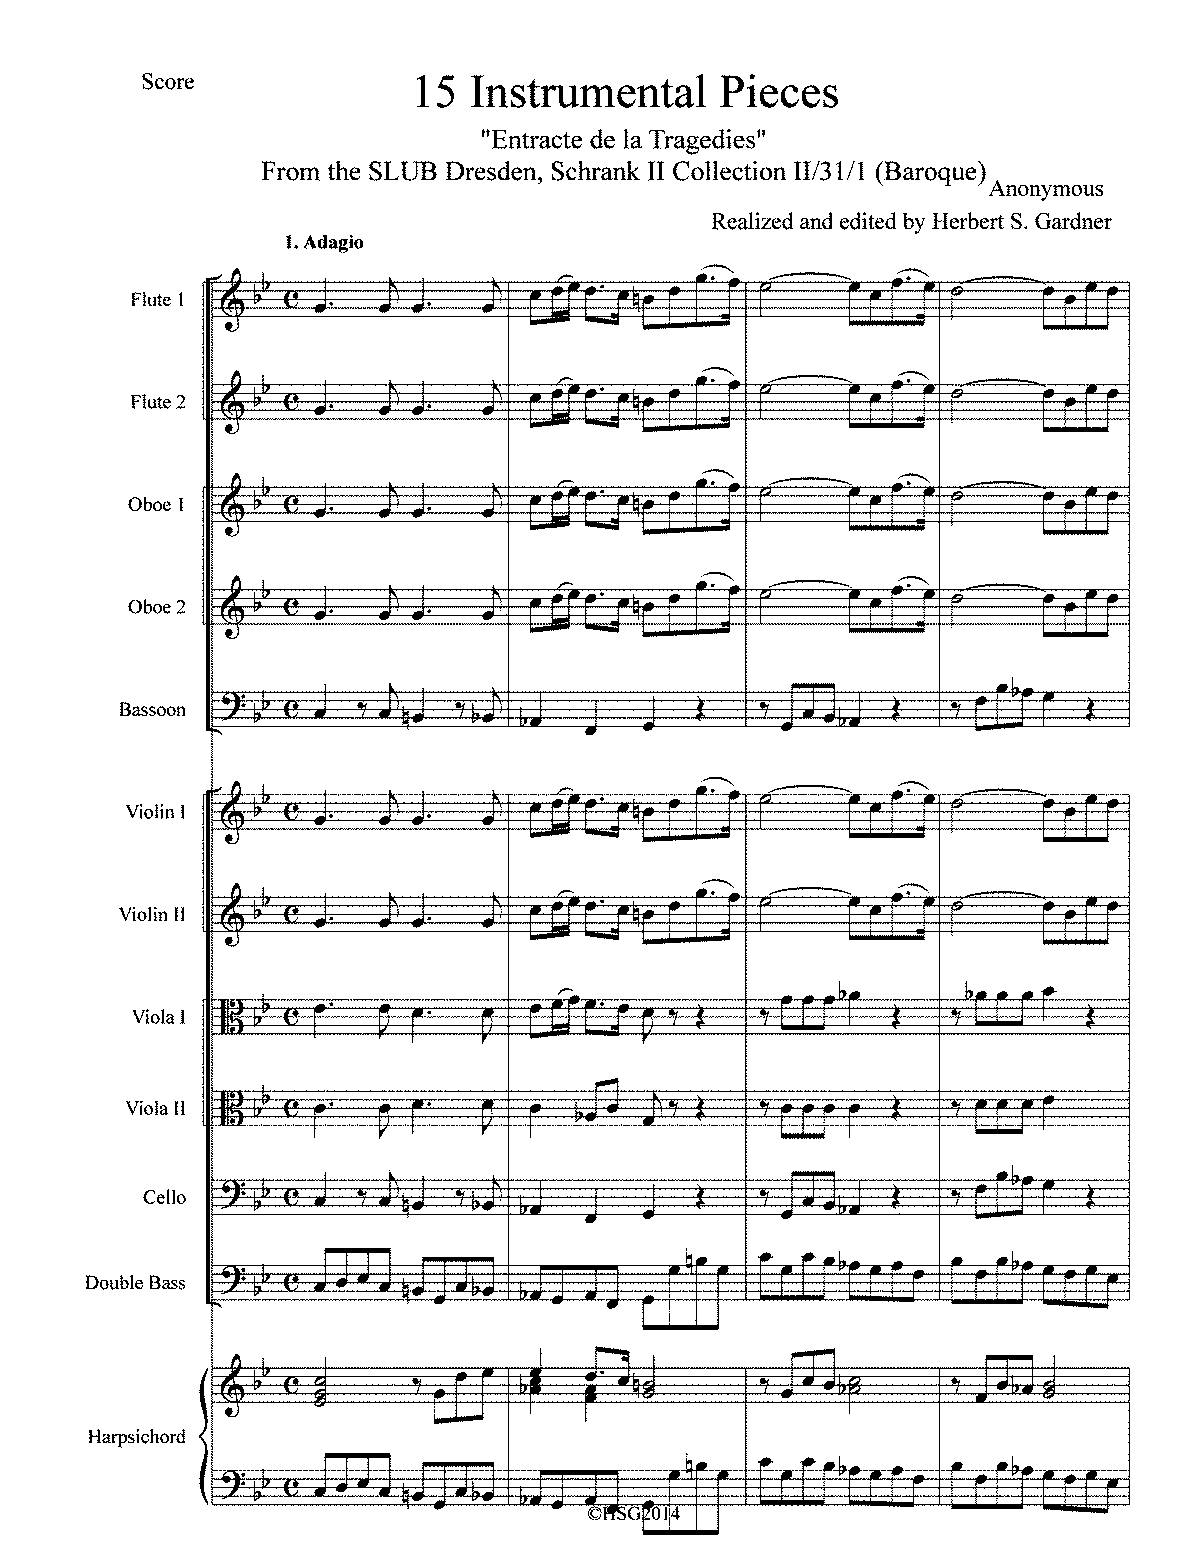 PMLP438636-Fifteen Instl Pieces Score.pdf